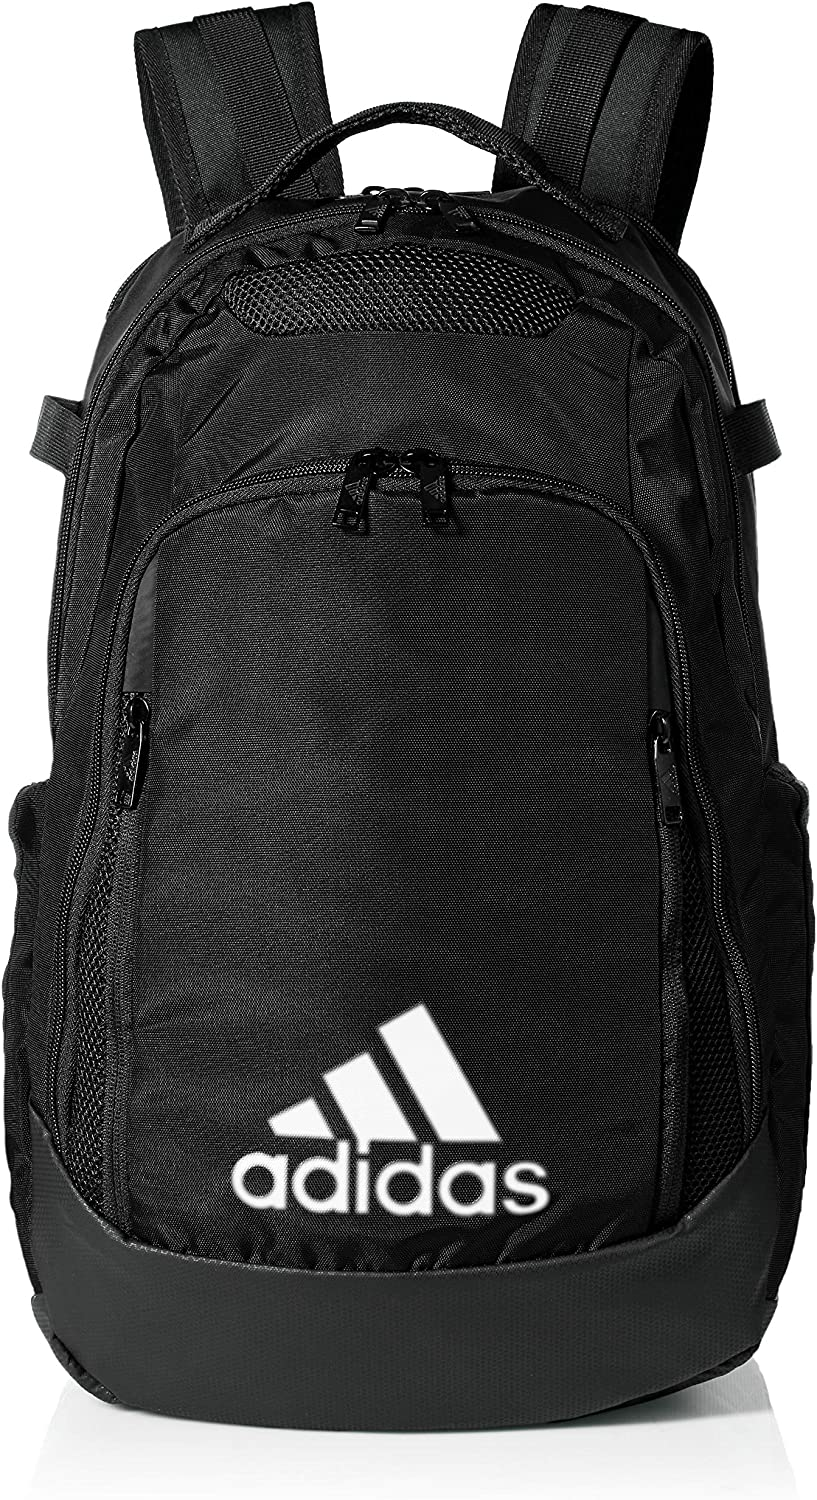 adidas Unisex-Adult 5-Star Team Backpack